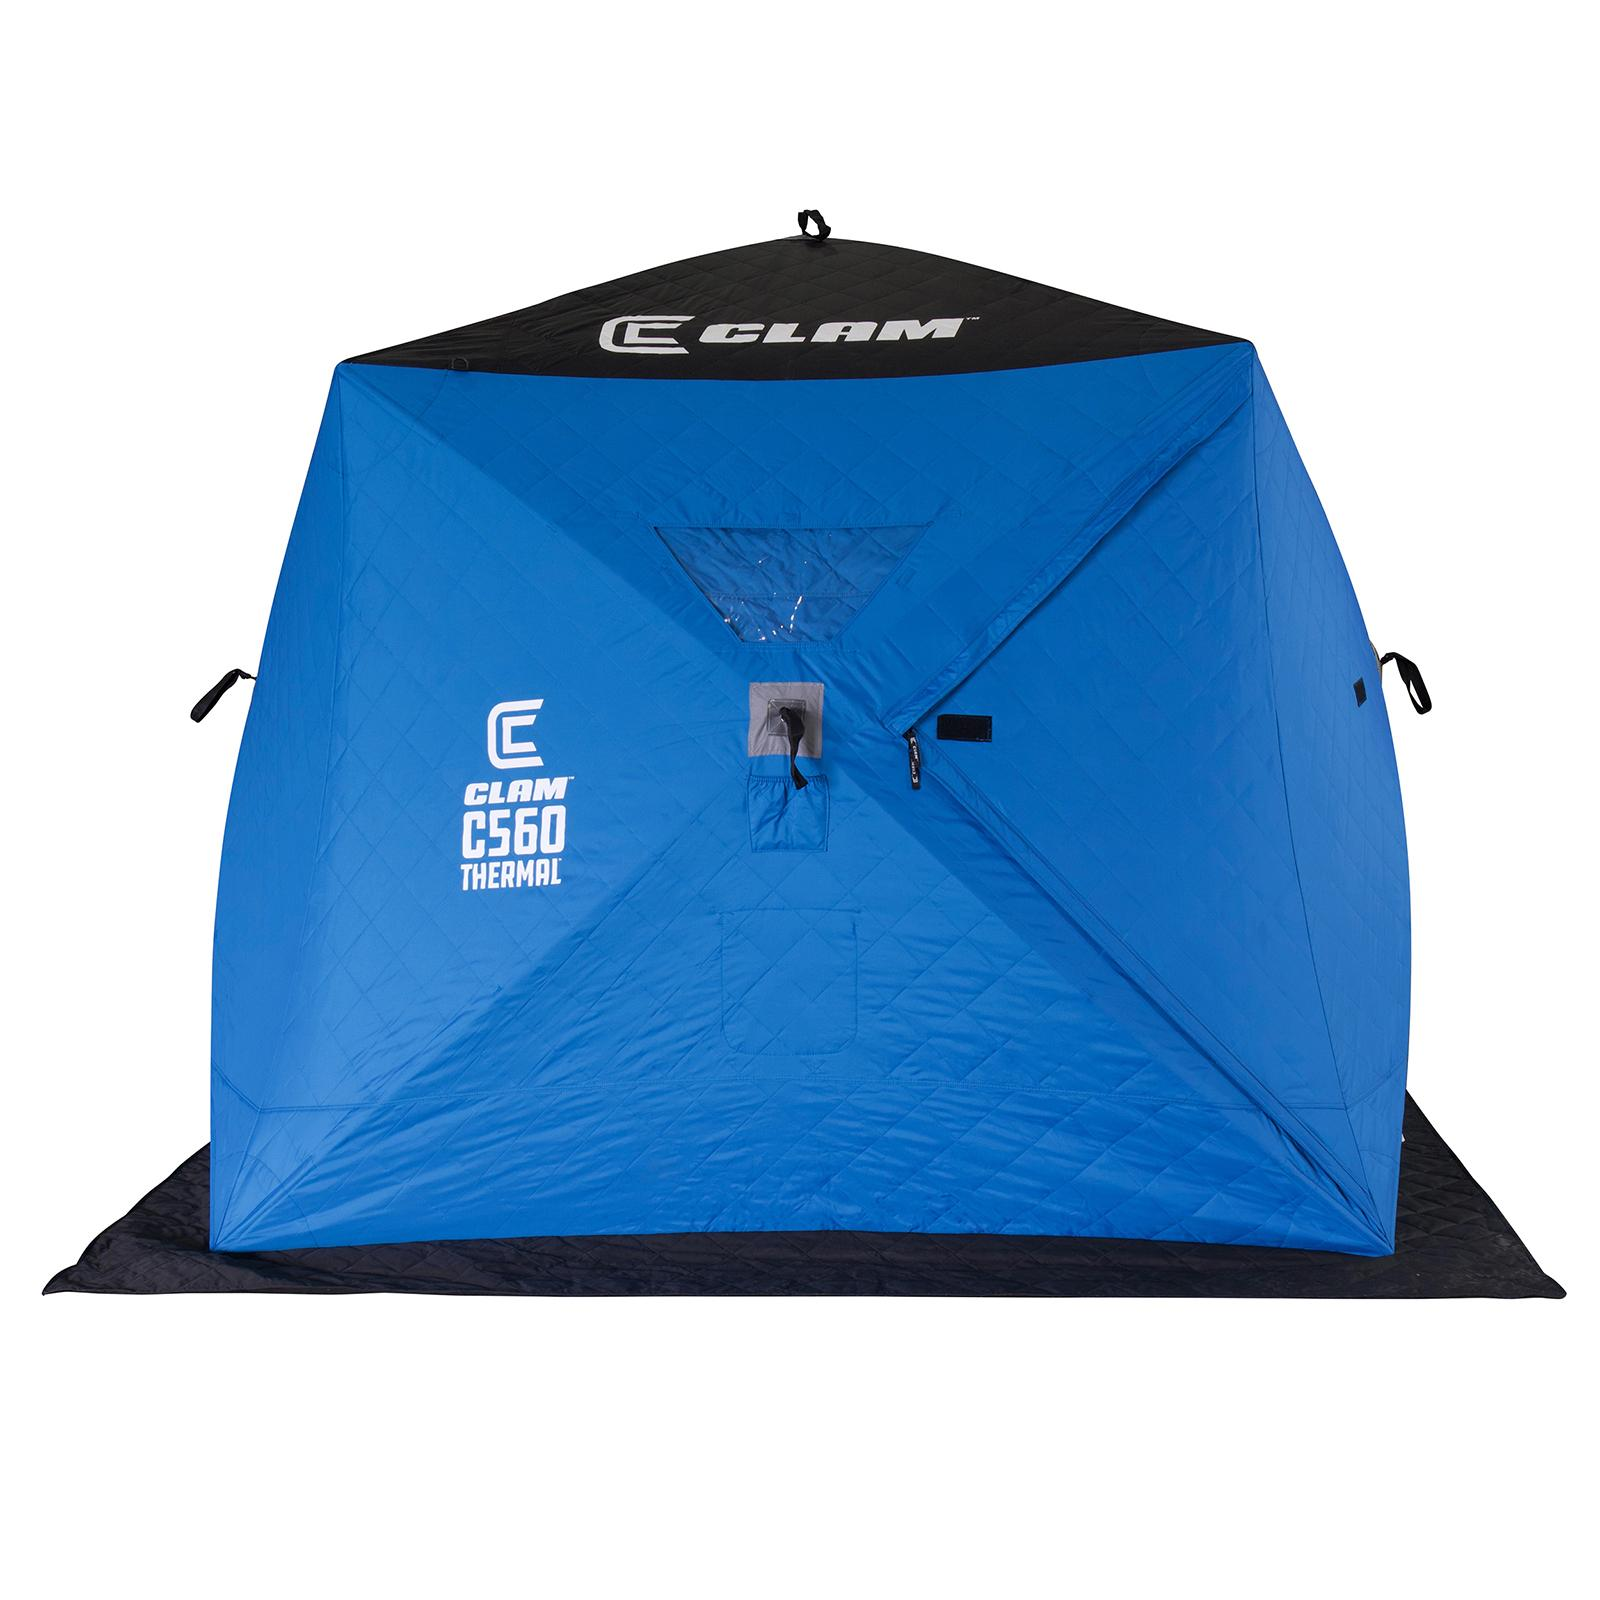 Clam C-560 Thermal Hub Ice Shelter Door Closed